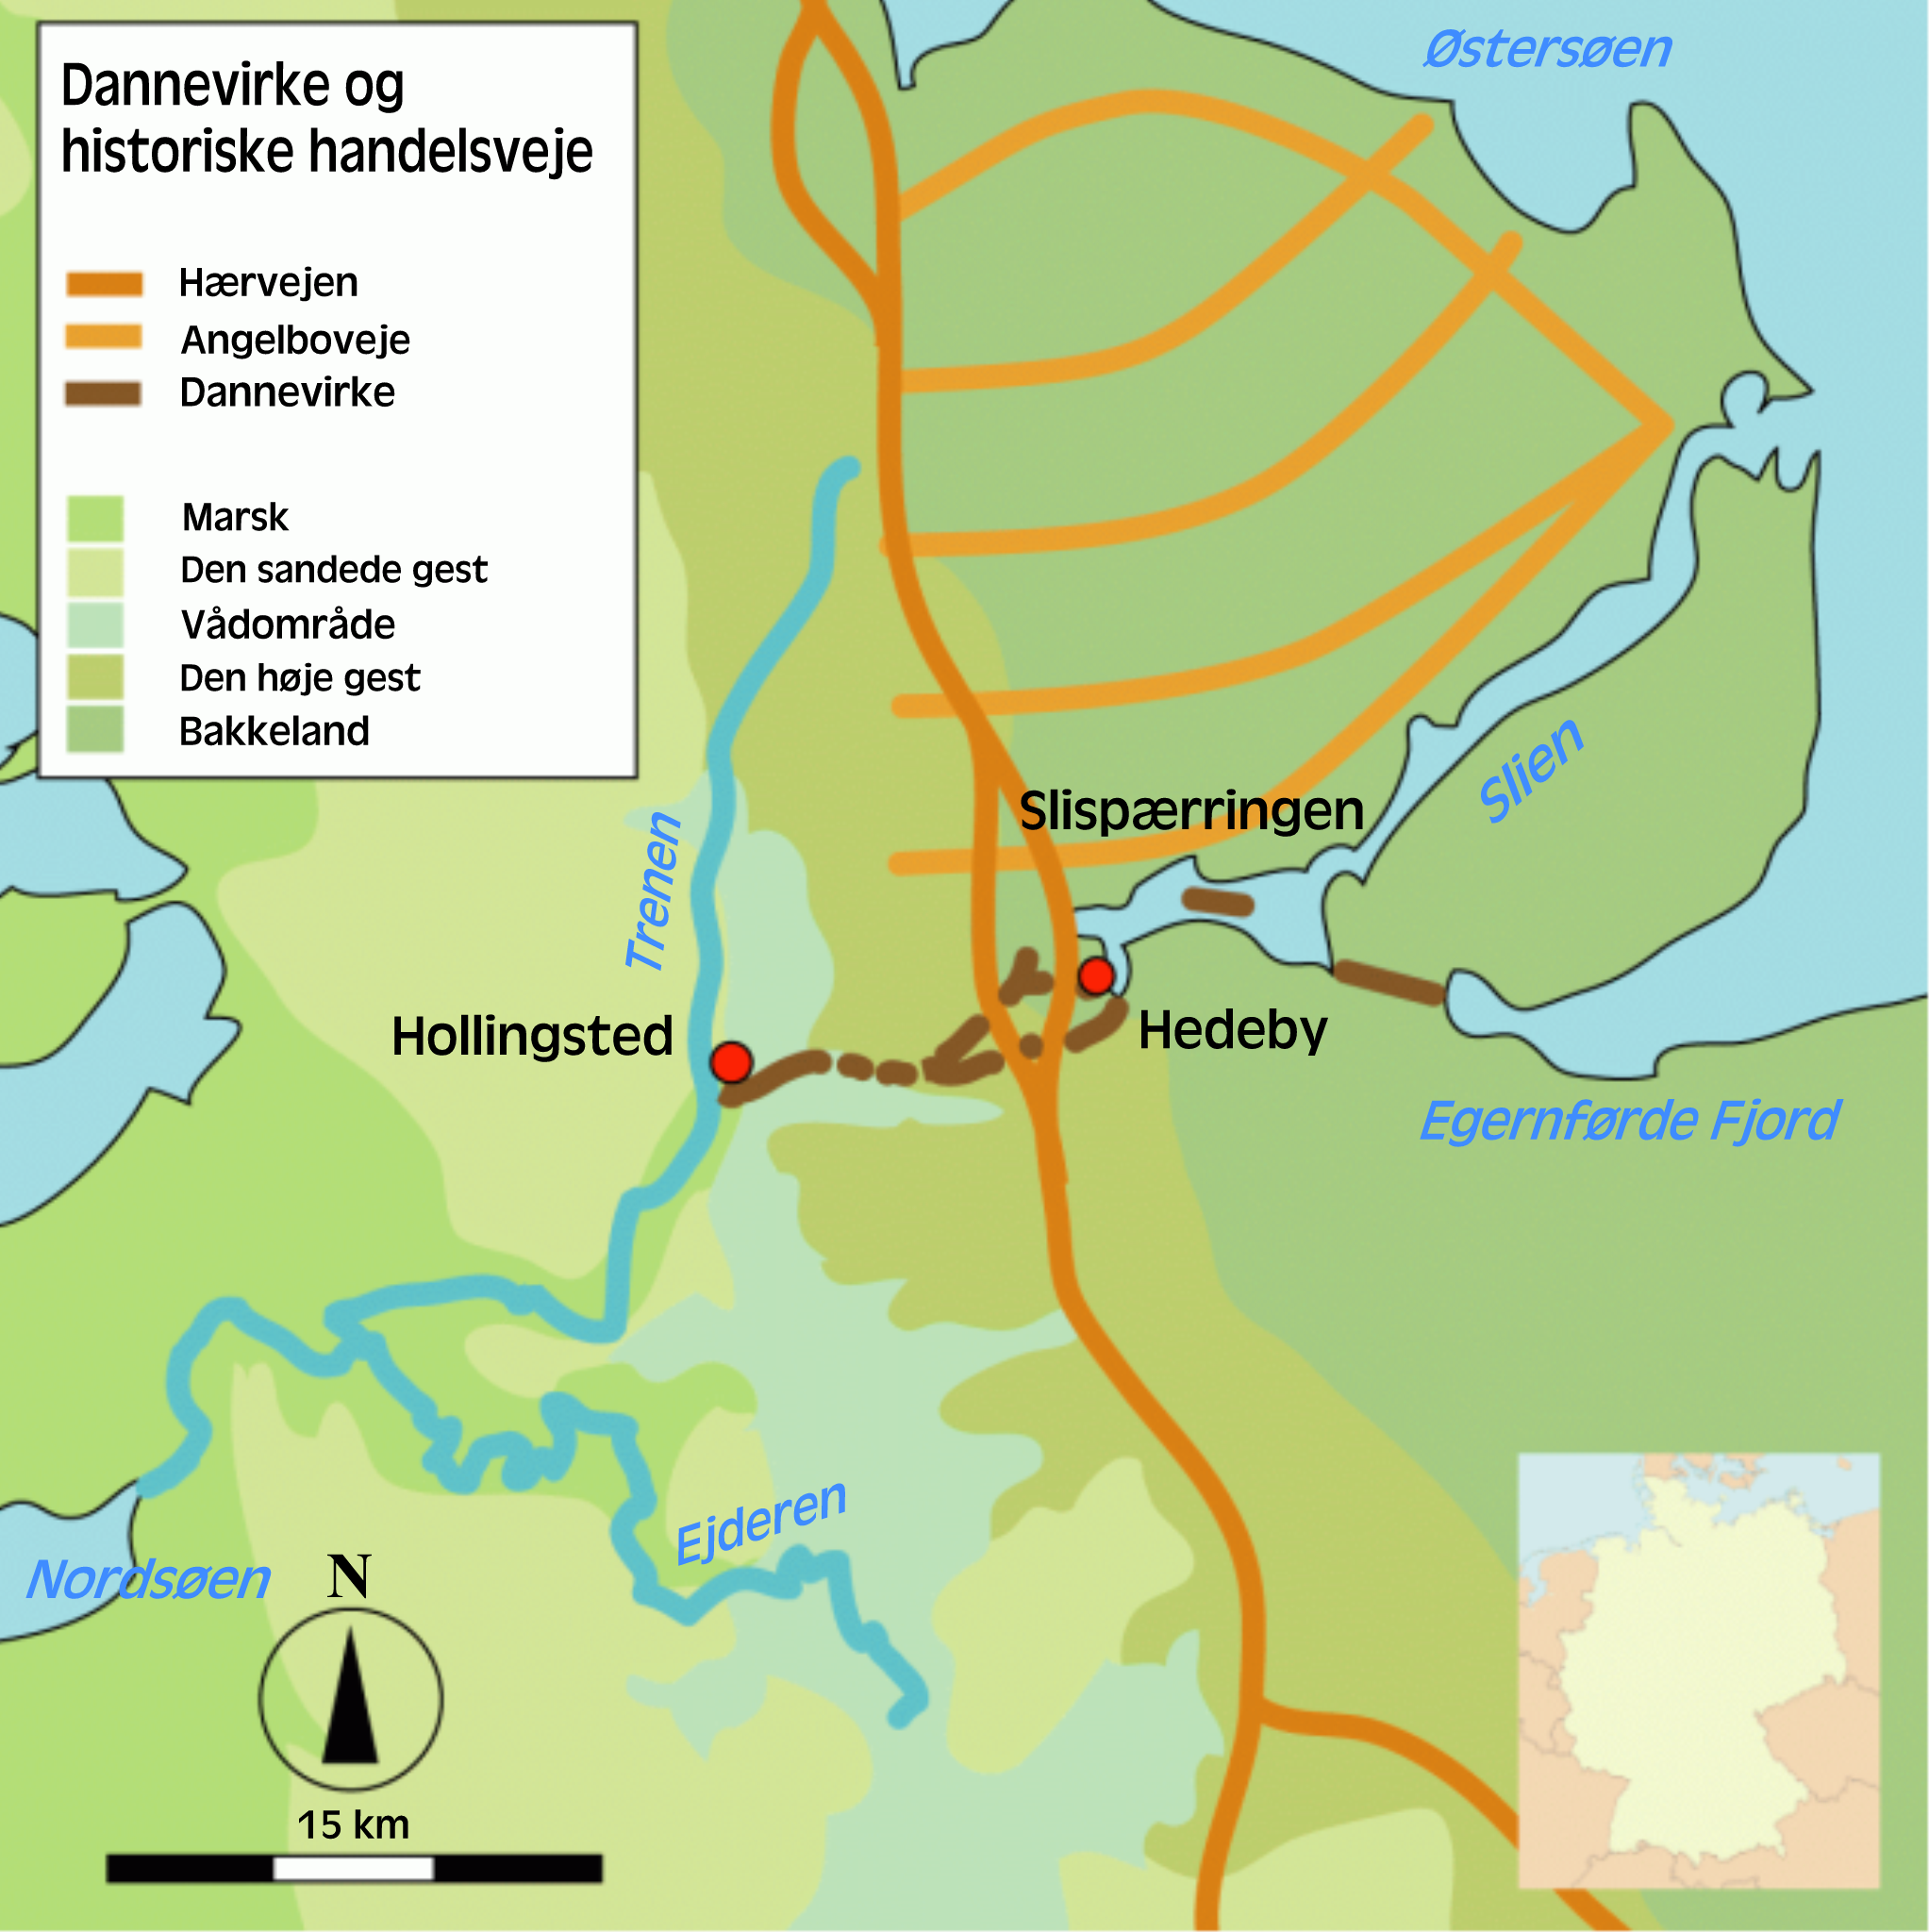 Location Of Hedeby In Denmarkmodern Germany Showing A Long - Sweden map hedestad